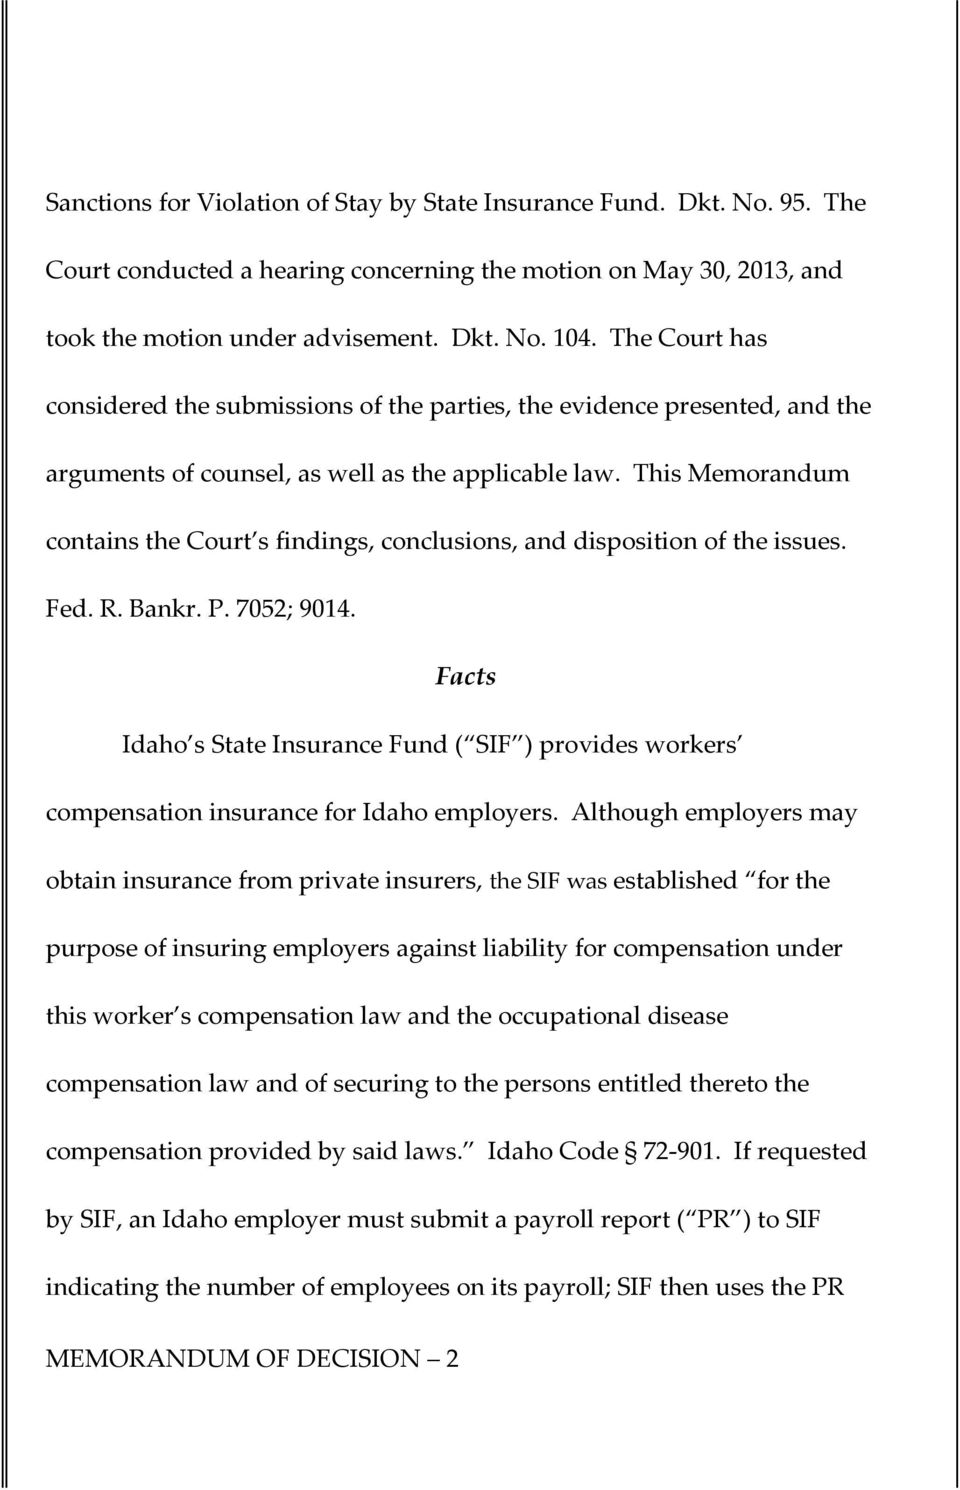 This Memorandum contains the Court s findings, conclusions, and disposition of the issues. Fed. R. Bankr. P. 7052; 9014.